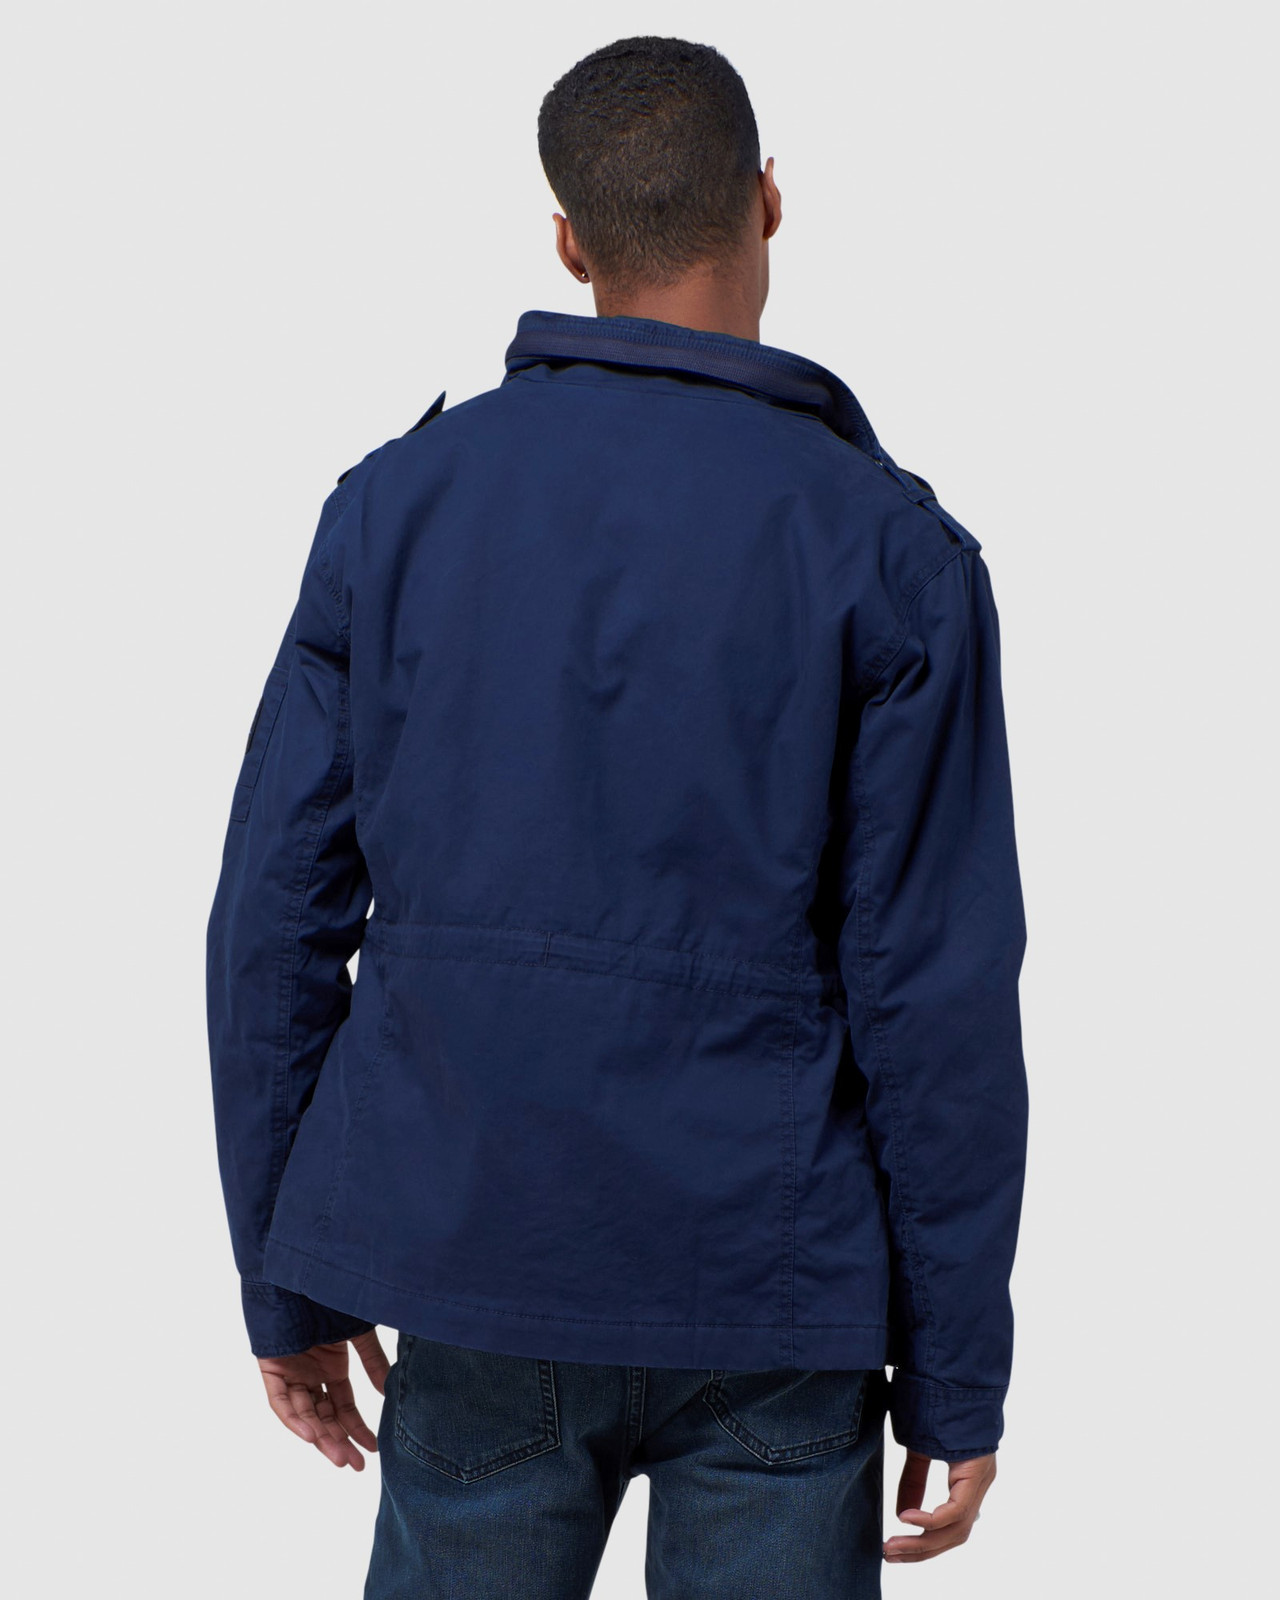 Superdry Mens CLASSIC RECRUIT JACKET Navy Military Jackets 3